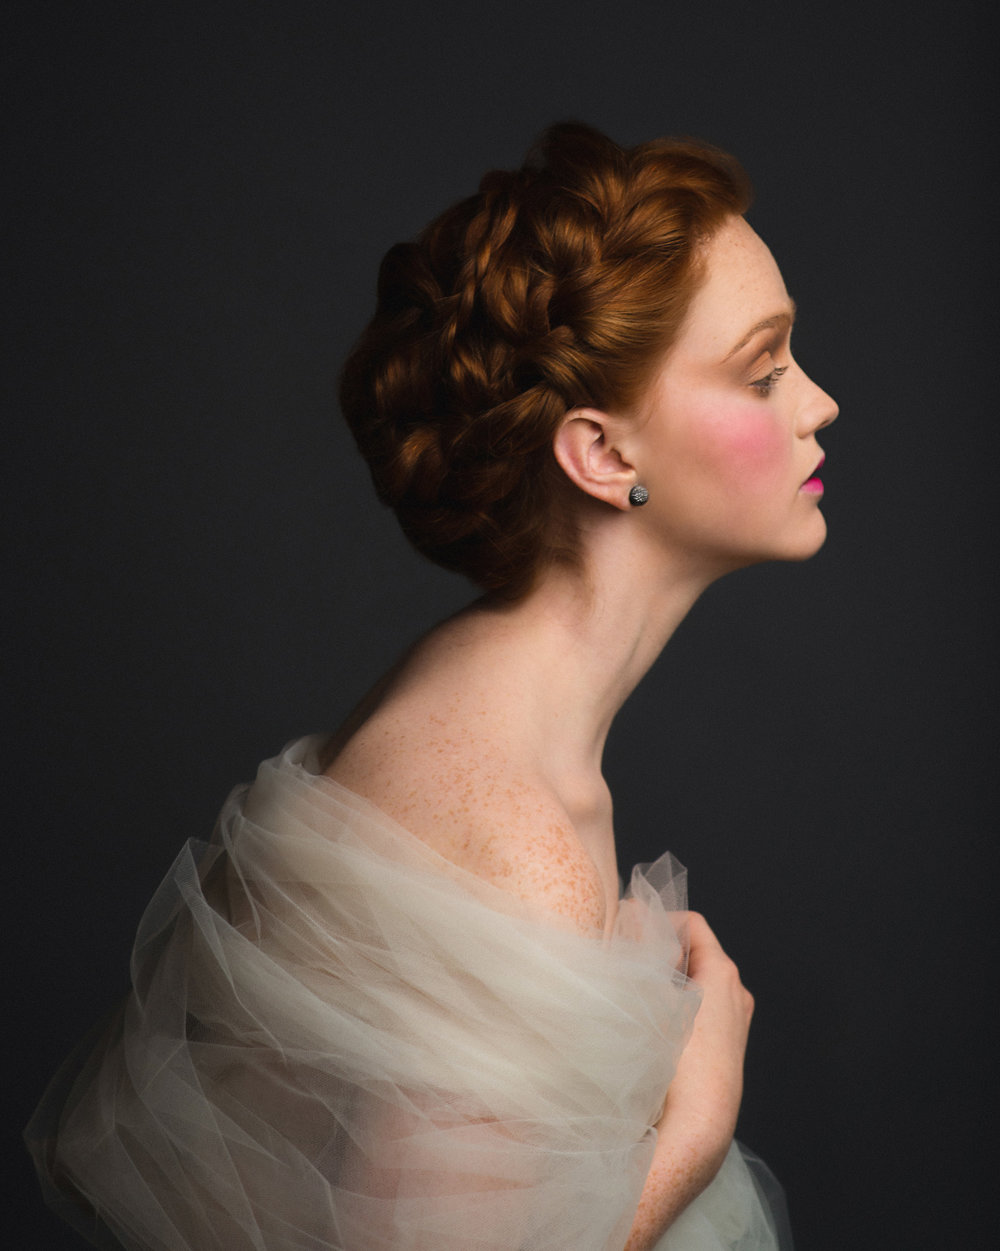 Romantic Victorian-inspired studio photo shoot with red haired model, by Sarah Hooker Photography